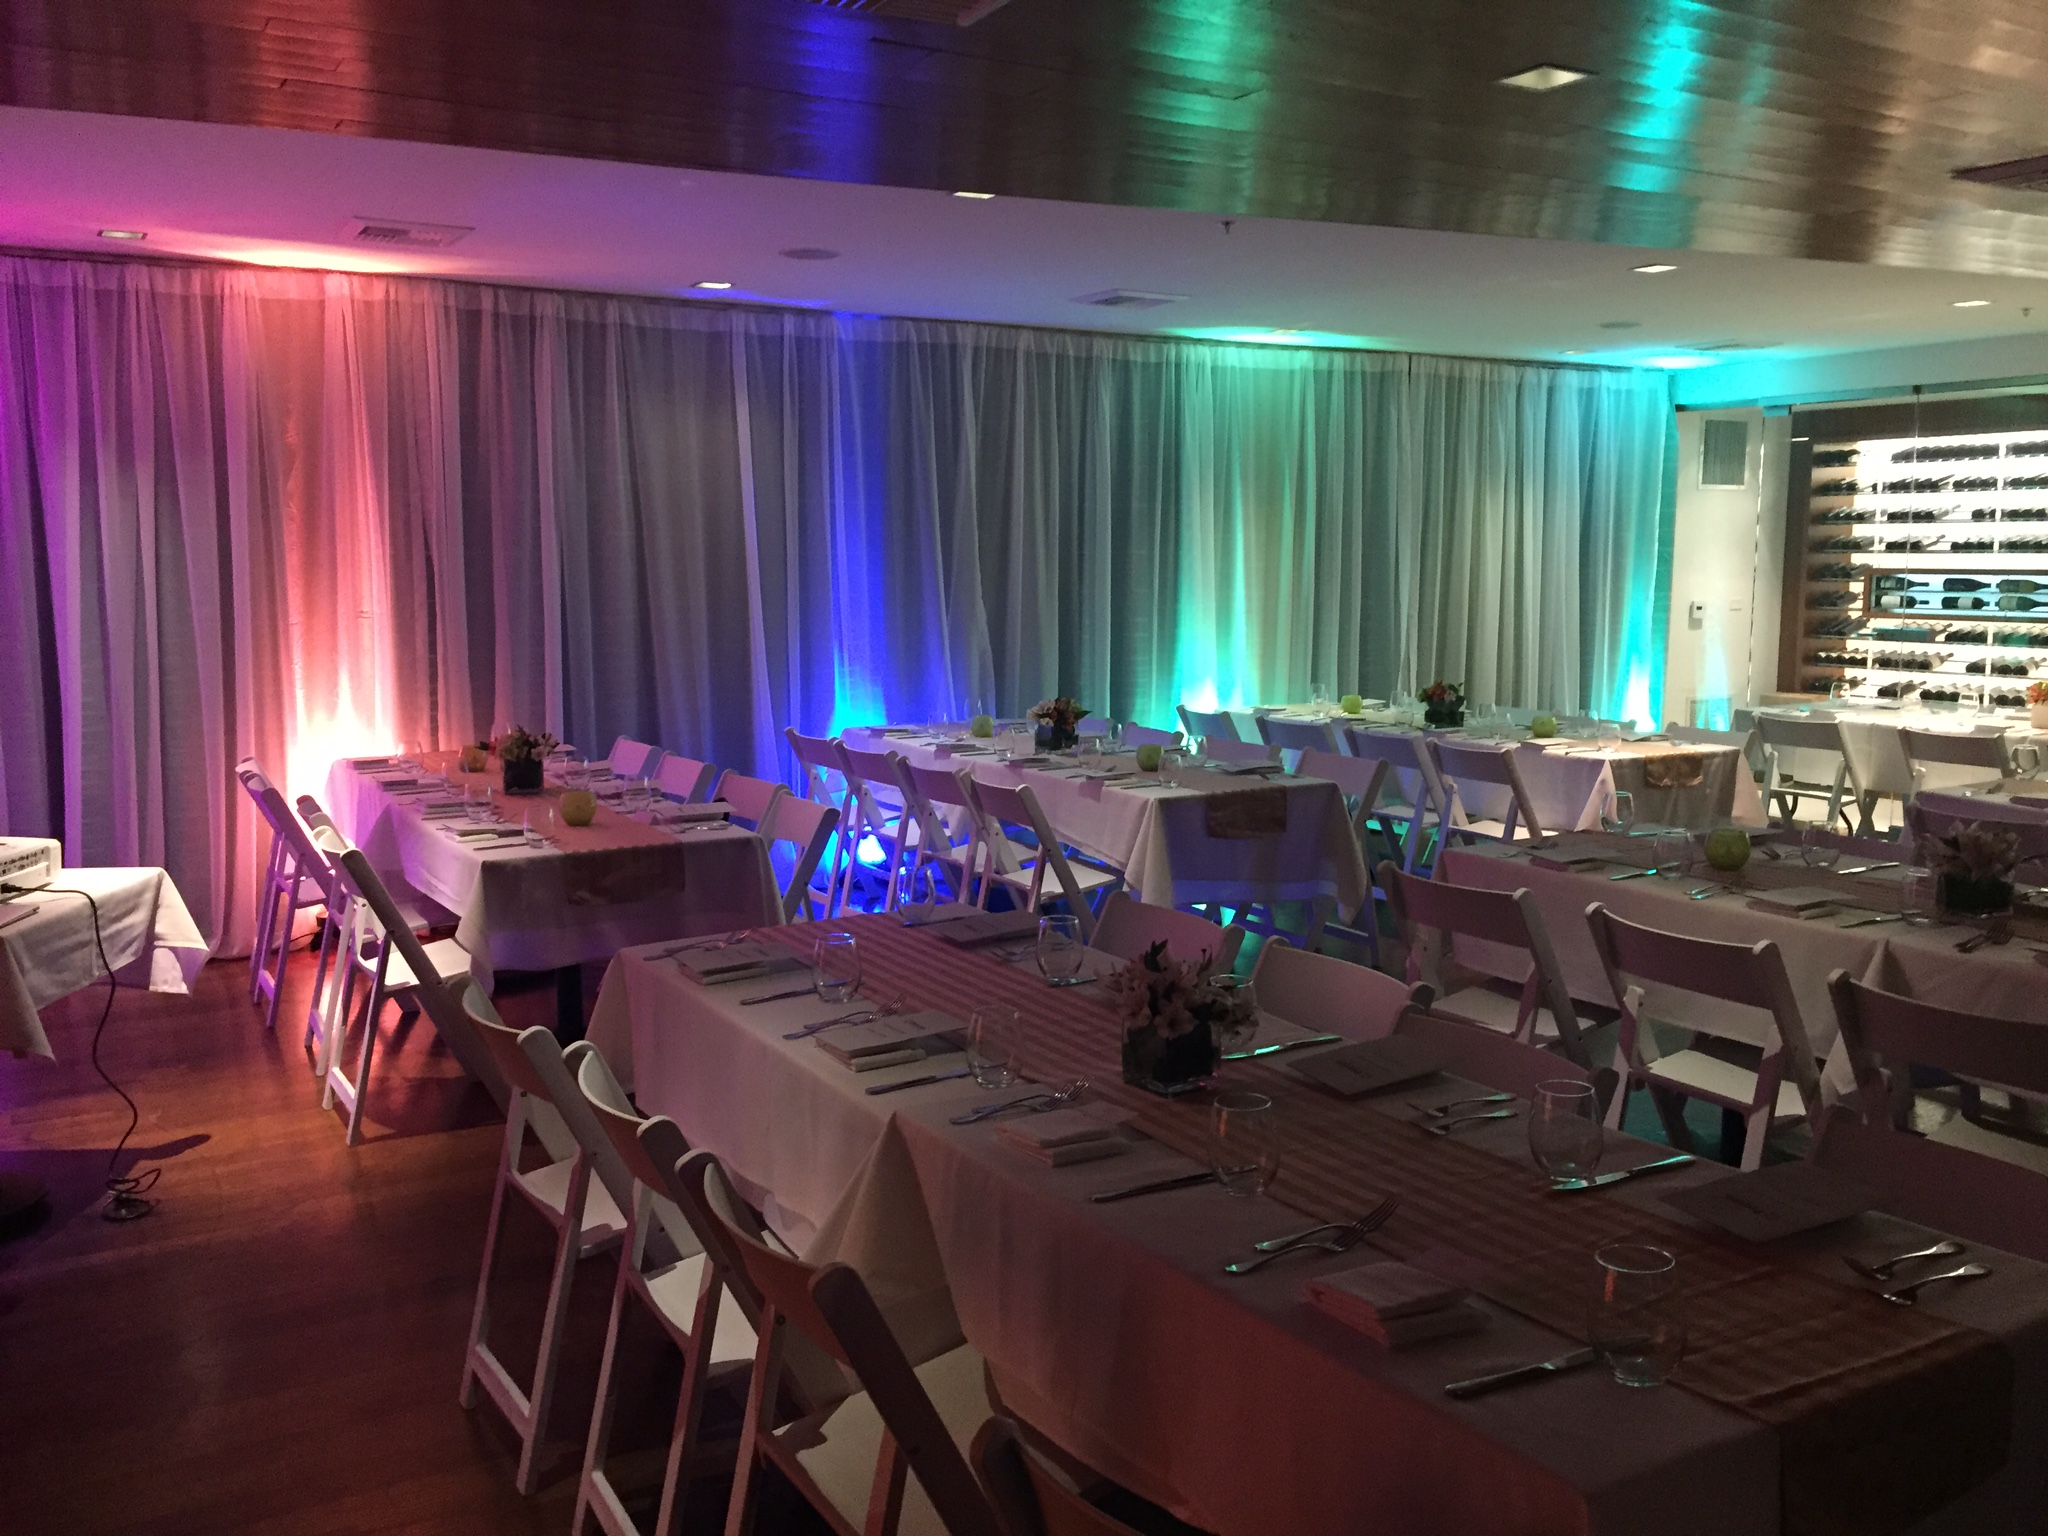 DJ Kanoya Productions provided uplighting inside the private dining room at JRDN Restaurant. The restaurant is located within the Tower23 Hotel in Pacific Beach - San Diego.